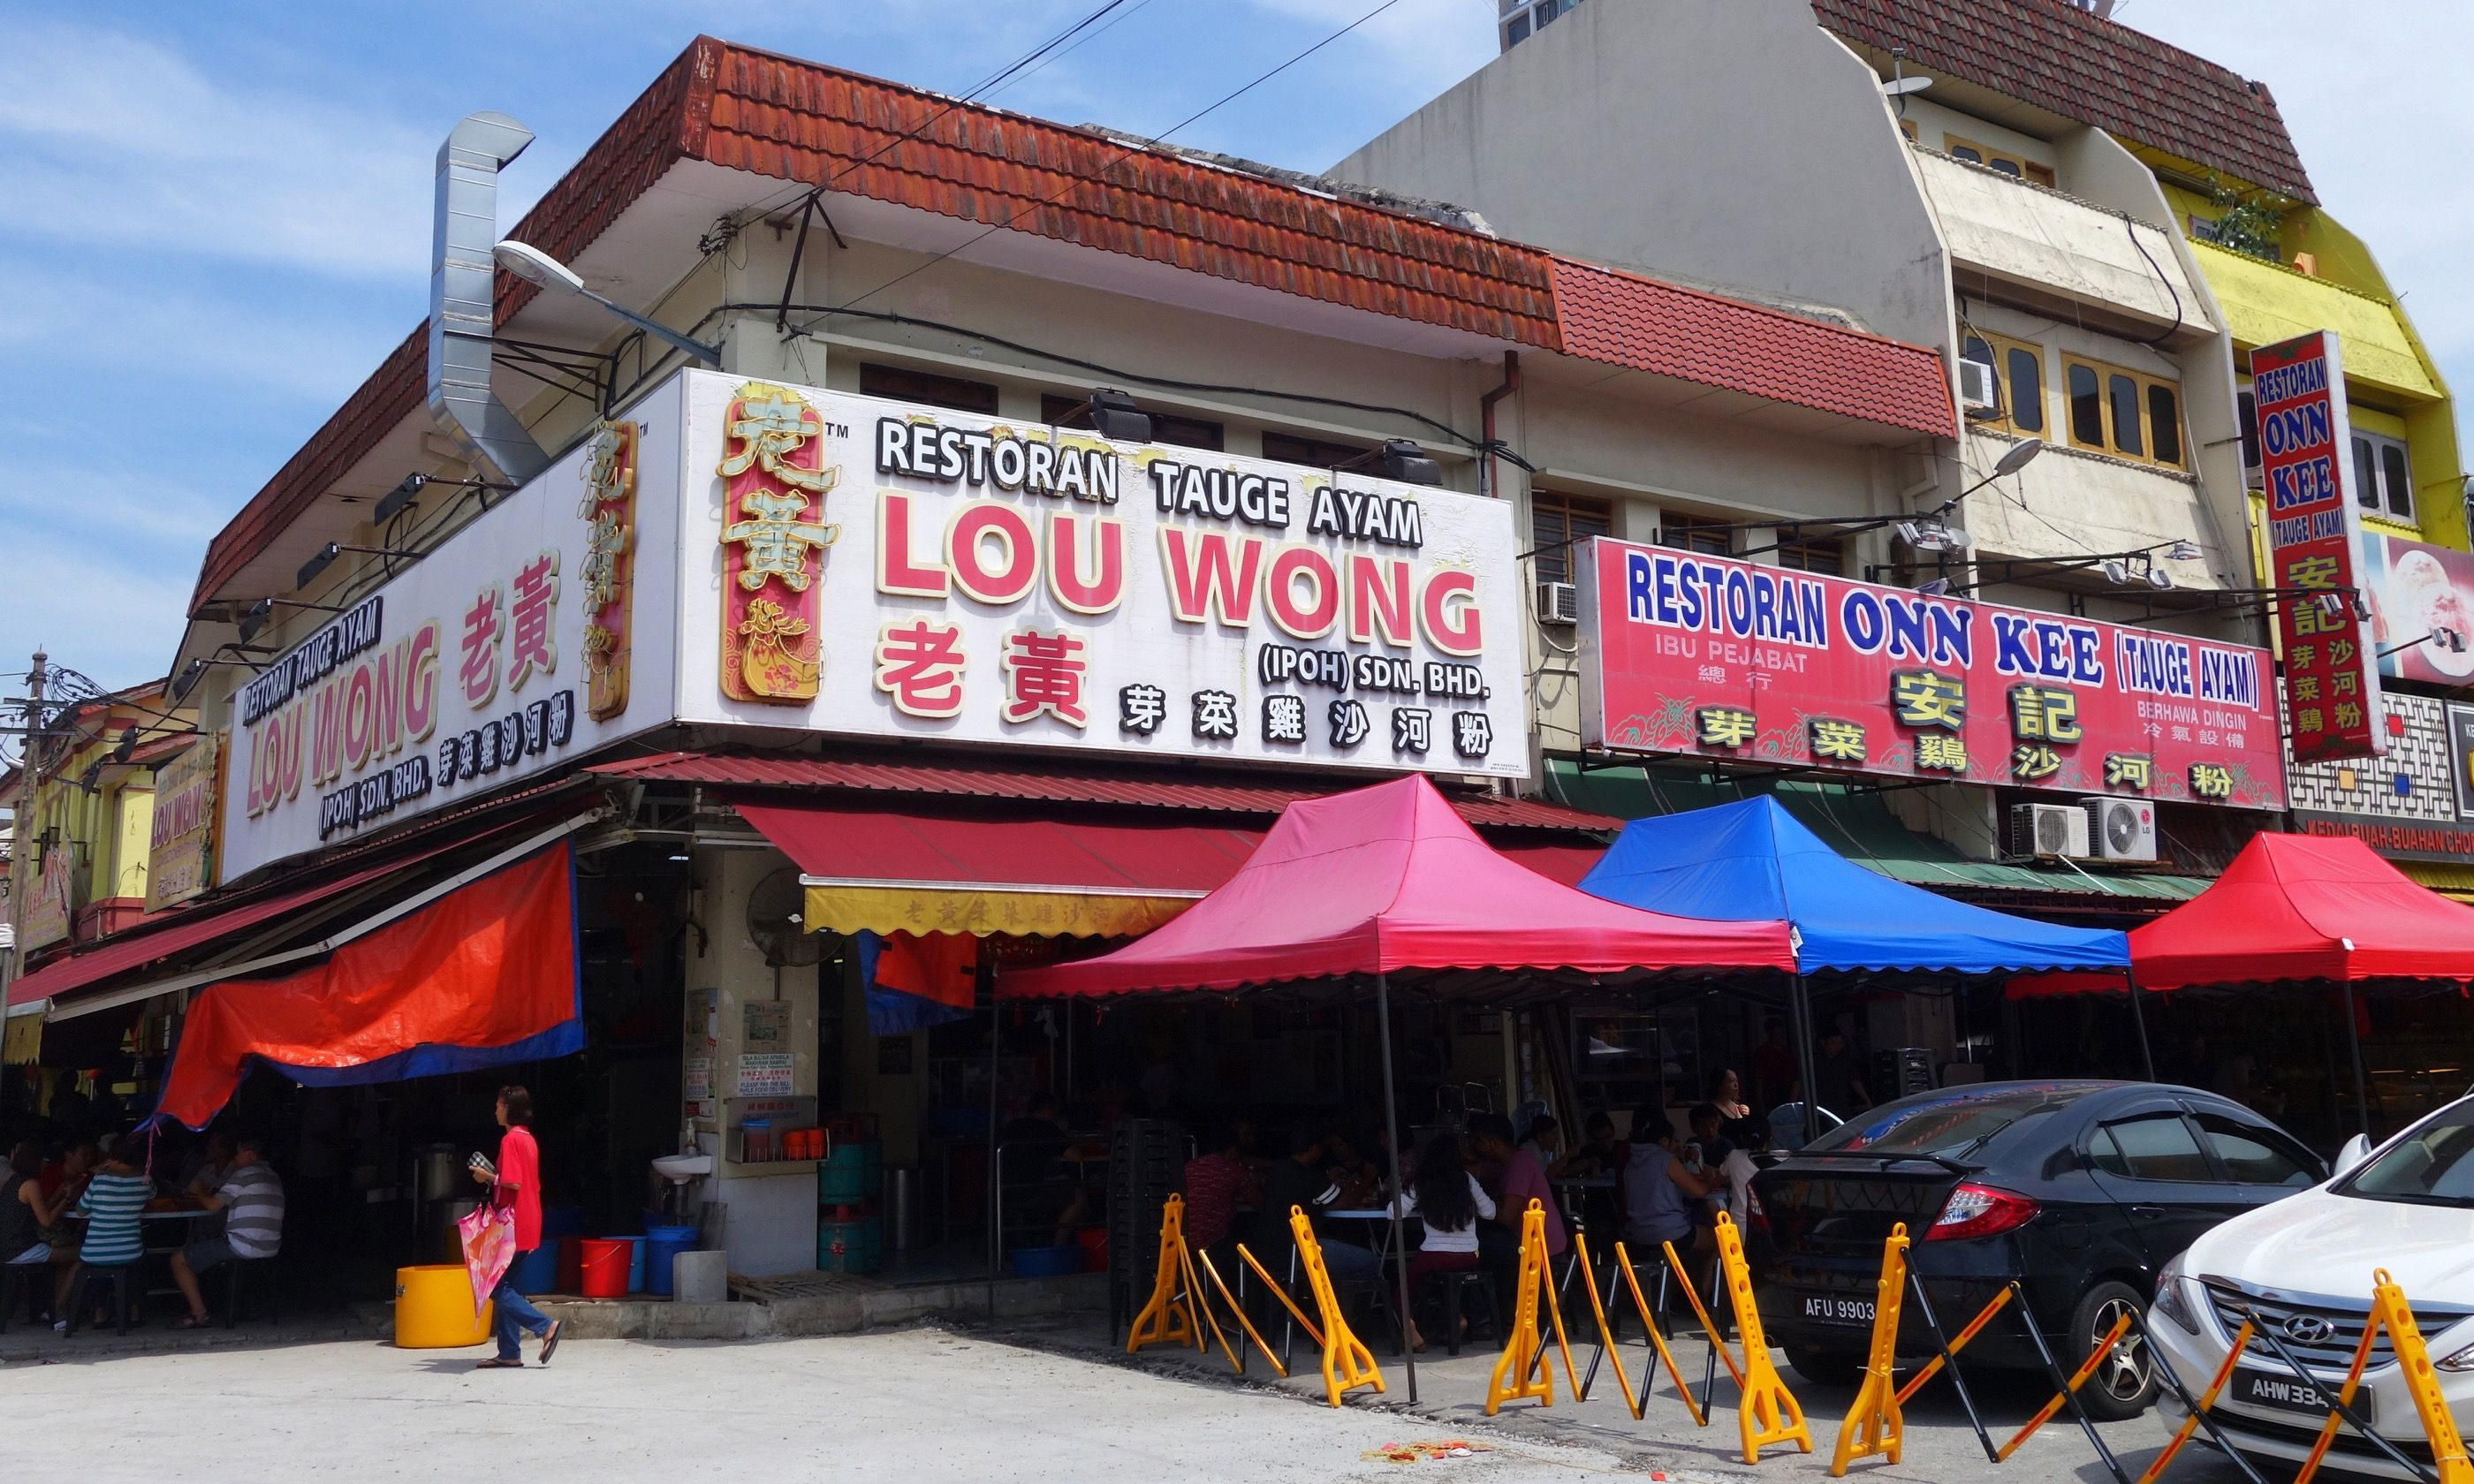 Lou Wong restaurant in Ipoh (Dreamstime)